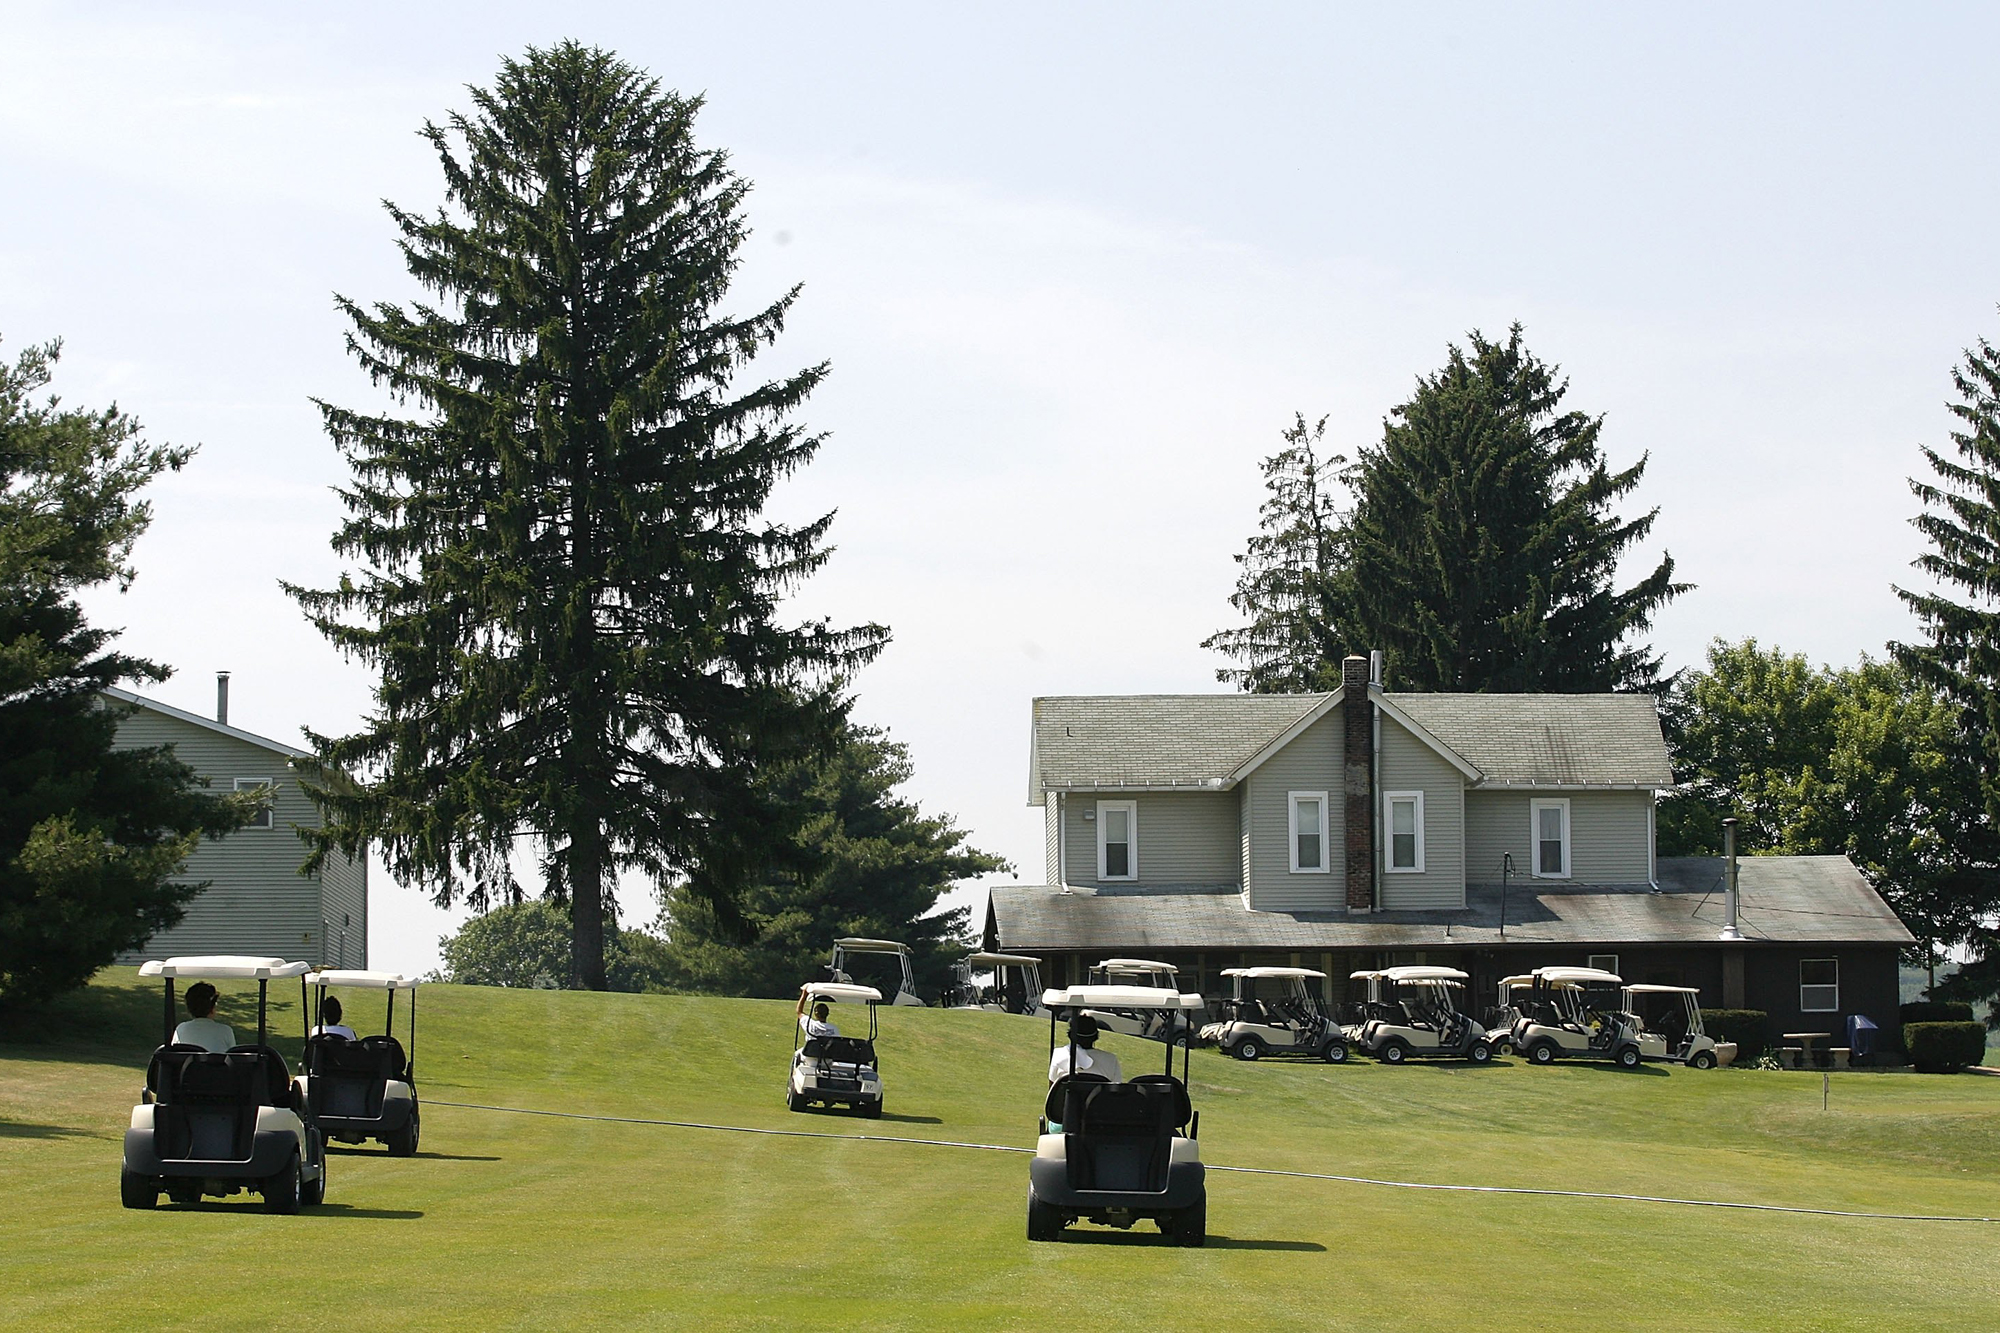 A view of the clubhouse at Clearview Golf Club on June 25, 2009 in East Canton, Ohio.